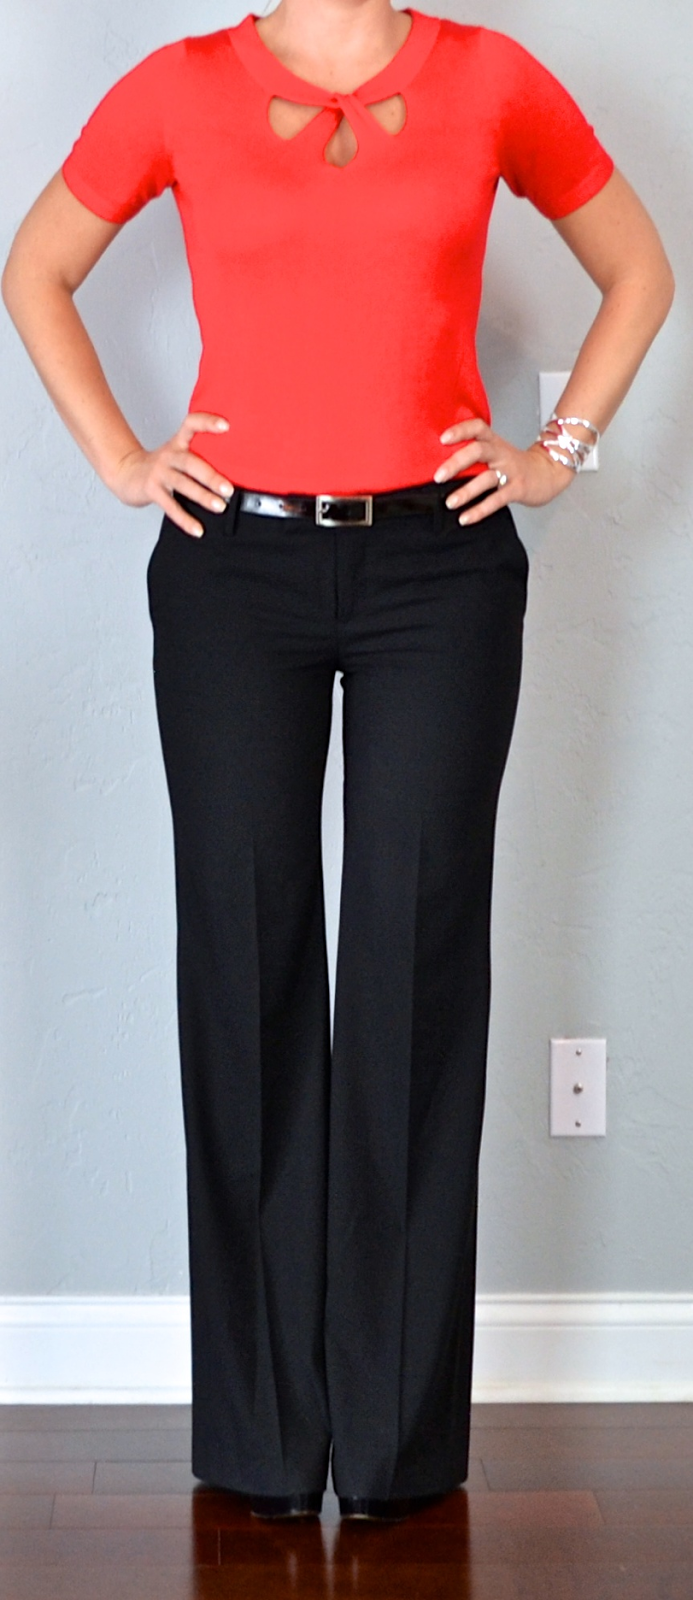 Enjoy free shipping and easy returns every day at Kohl's. Find great deals on Red Pants for Women at Kohl's today!